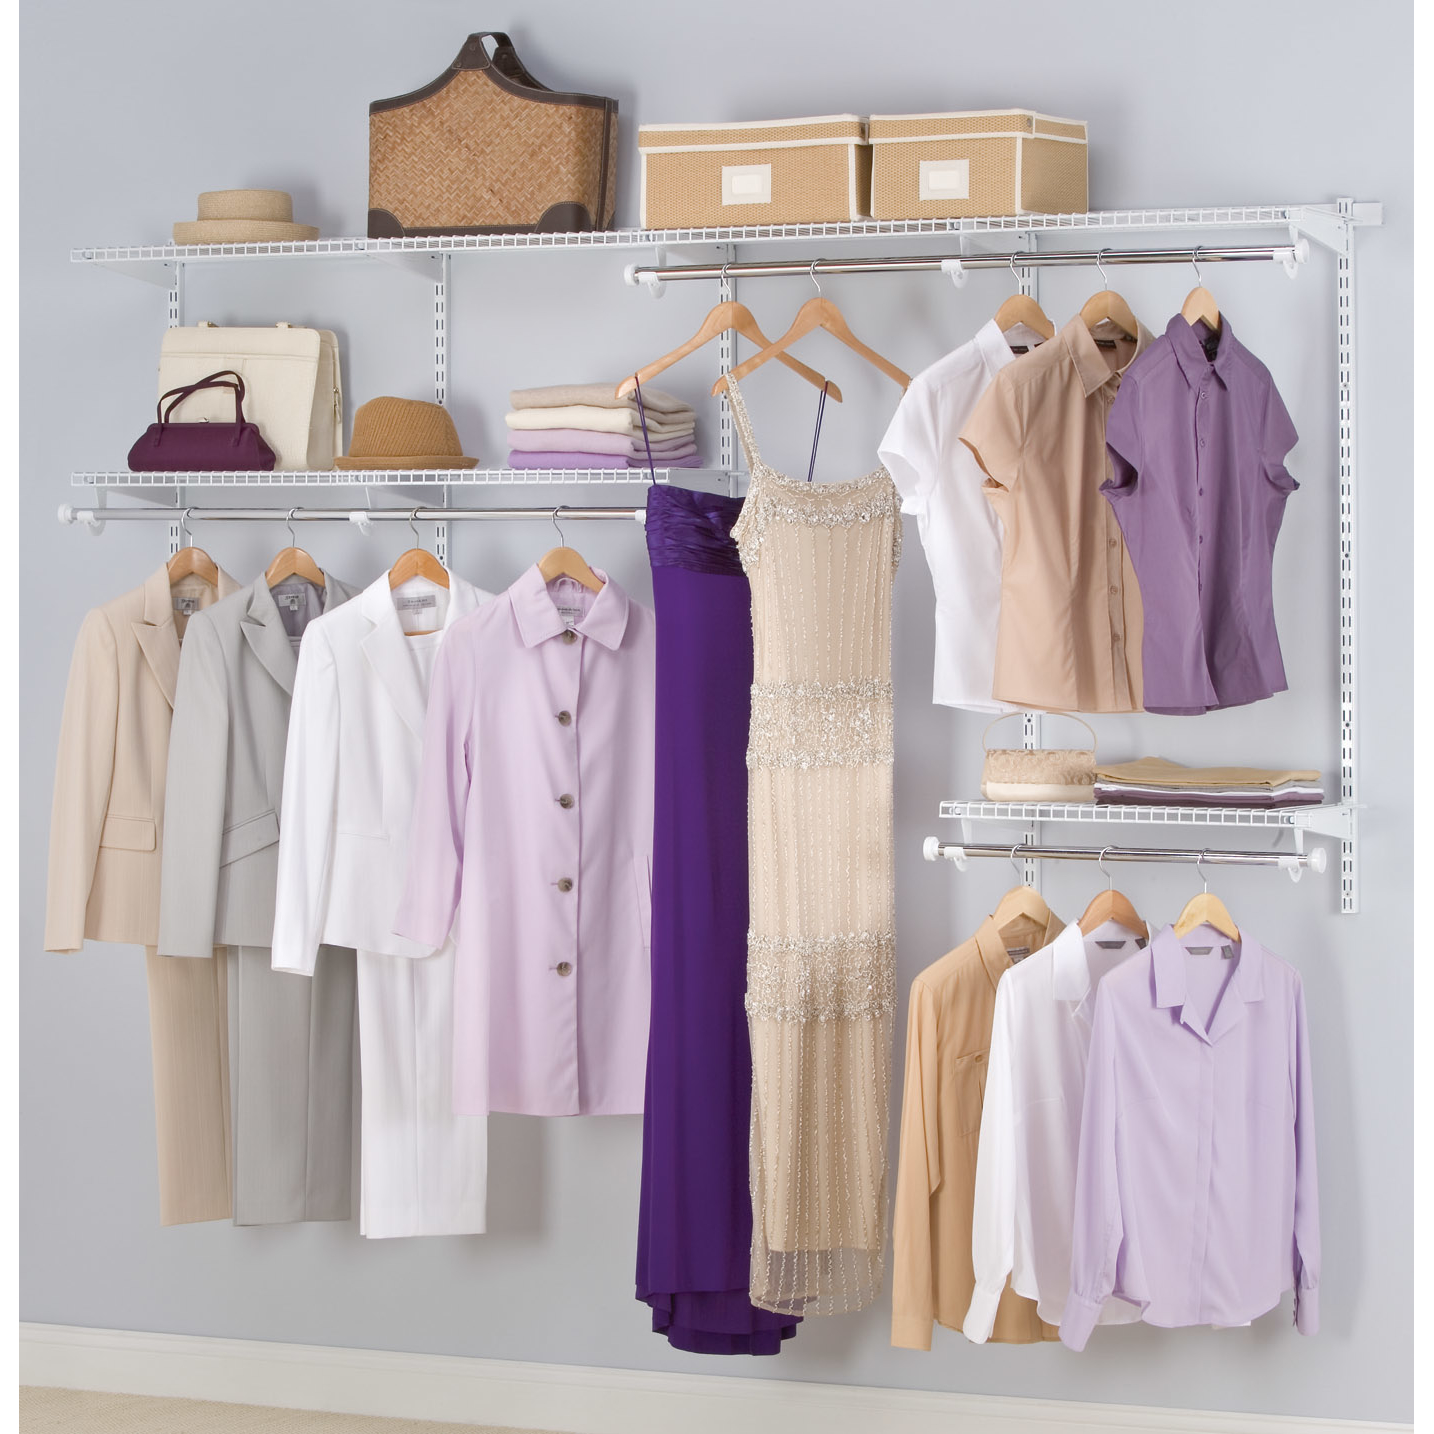 Rubbermaid FG3G5902WHT Configurations™ Closet Kit White